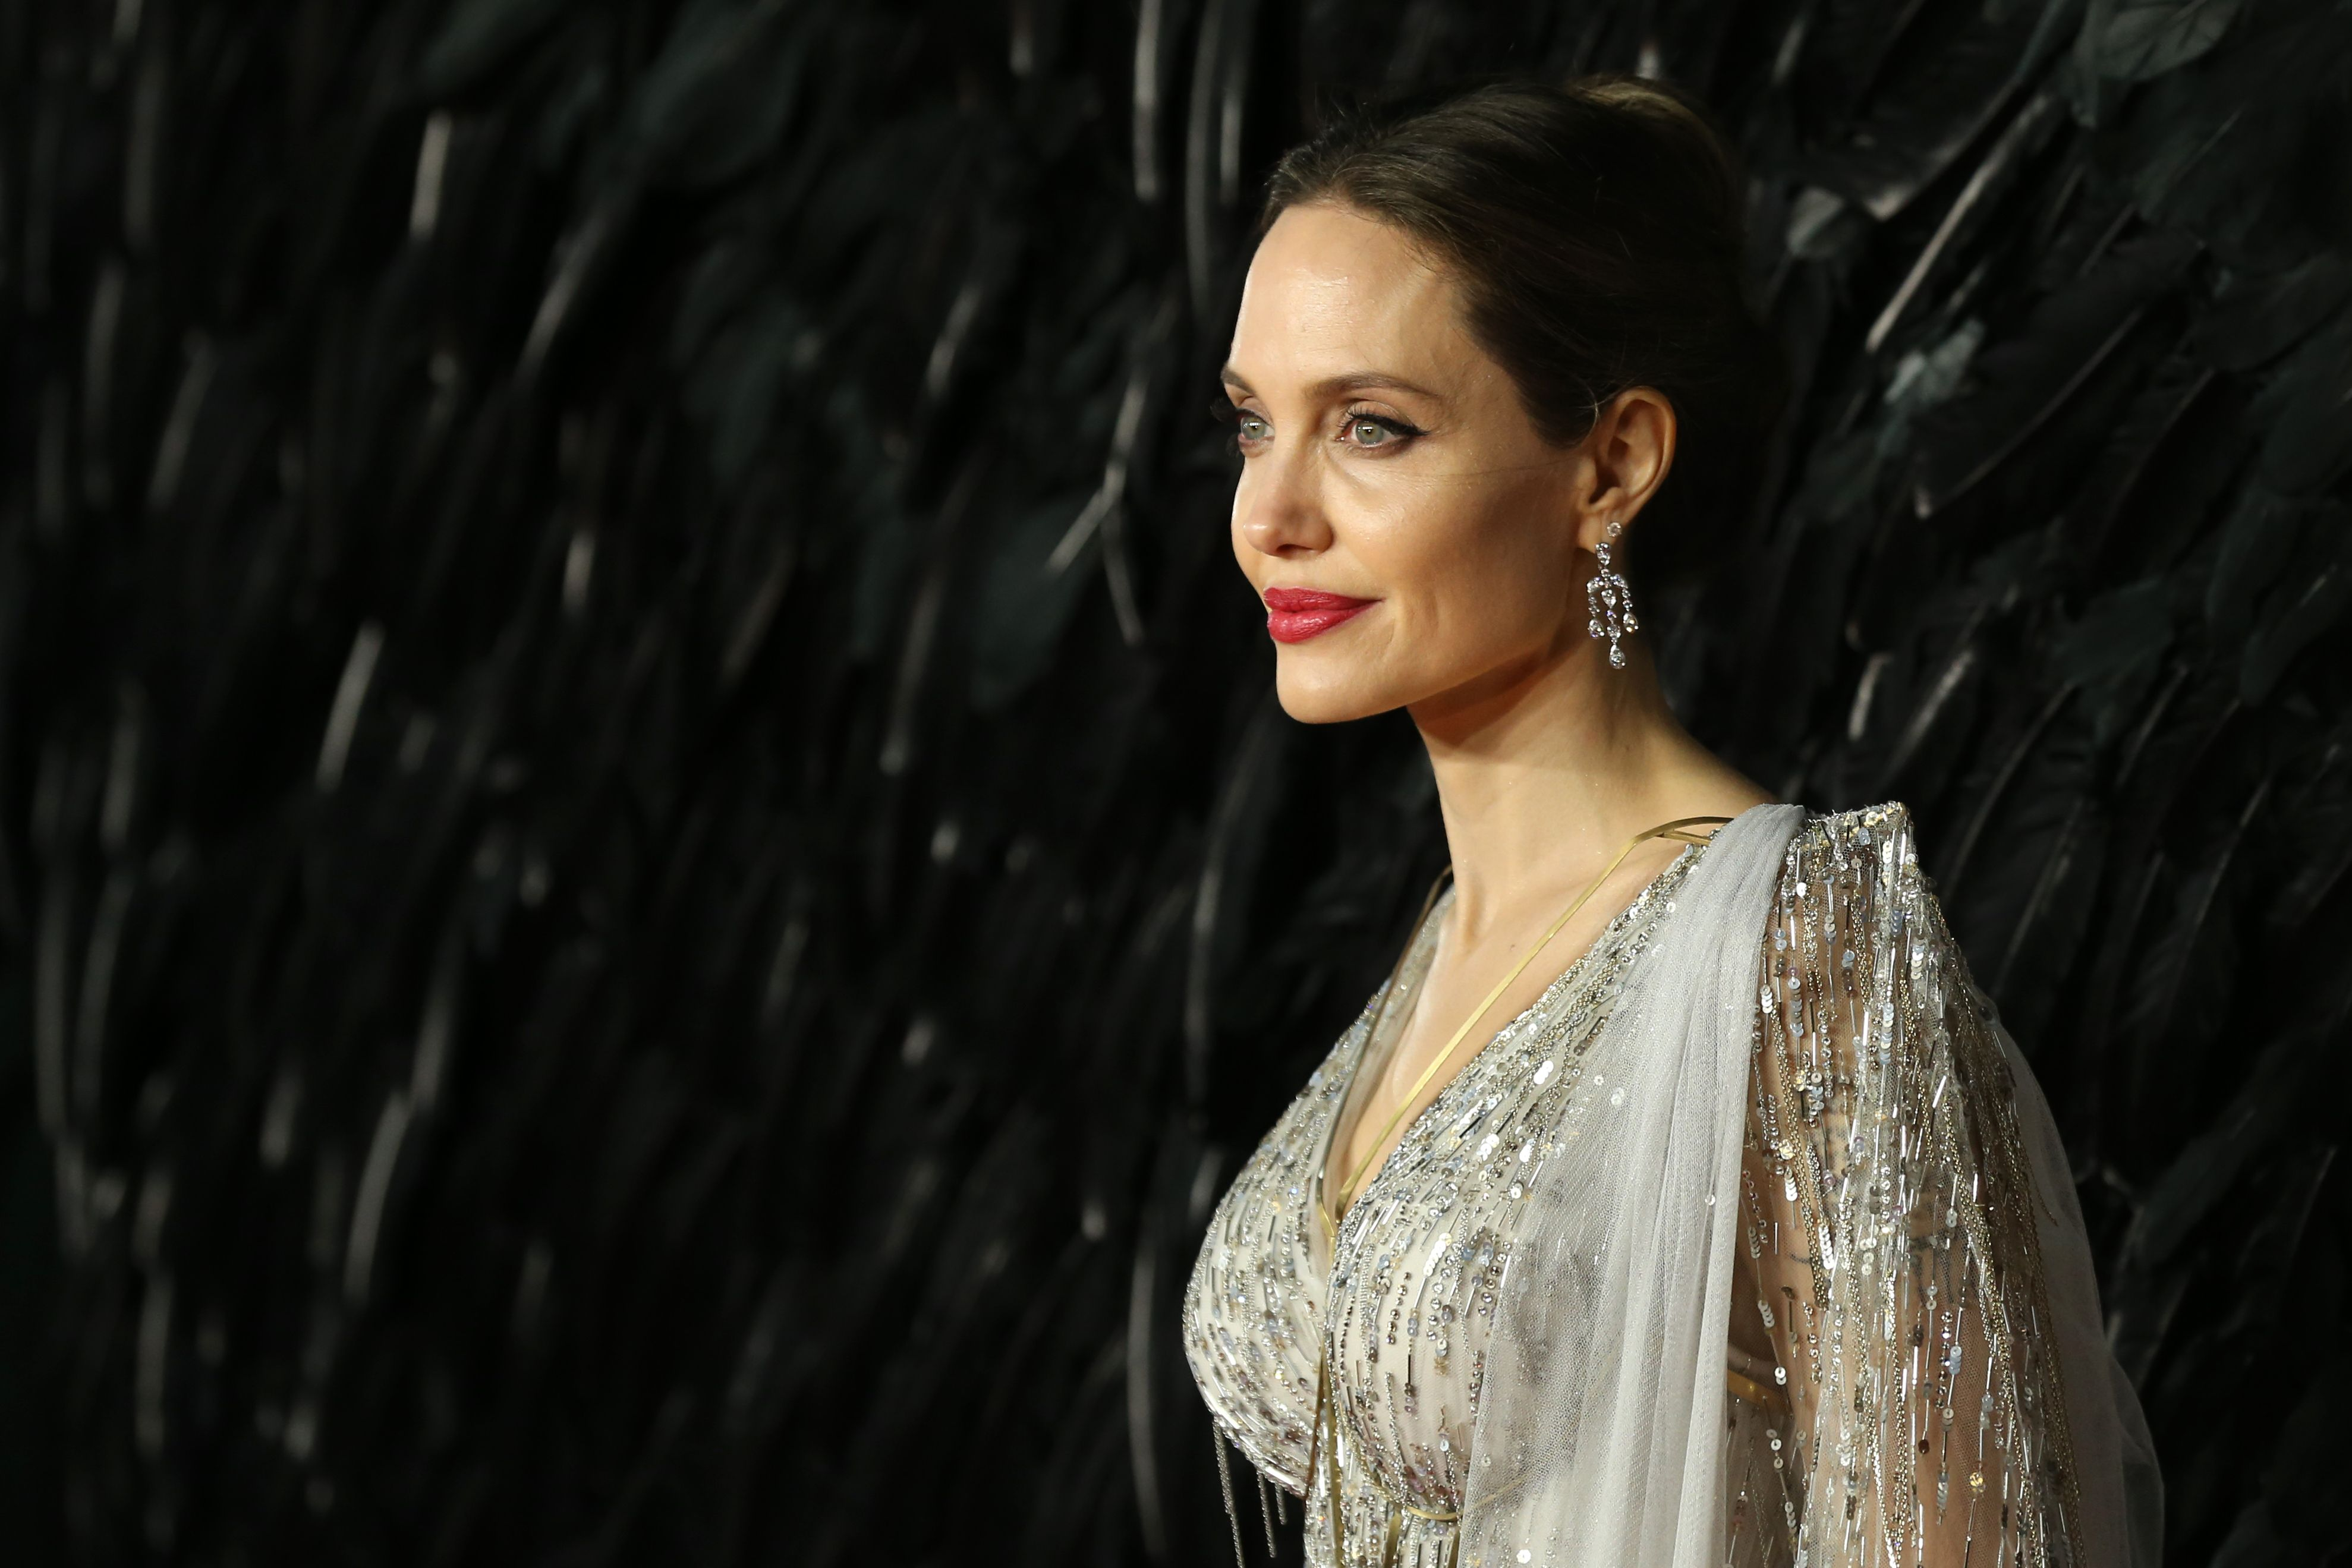 US actress Angelina Jolie poses on the red carpet upon arrival for the European premiere of the film  Maleficent:Mistress of Evil  in London on October 9, 2019. (Photo by ISABEL INFANTES / AFP) (Photo by ISABEL INFANTES/AFP via Getty Images)